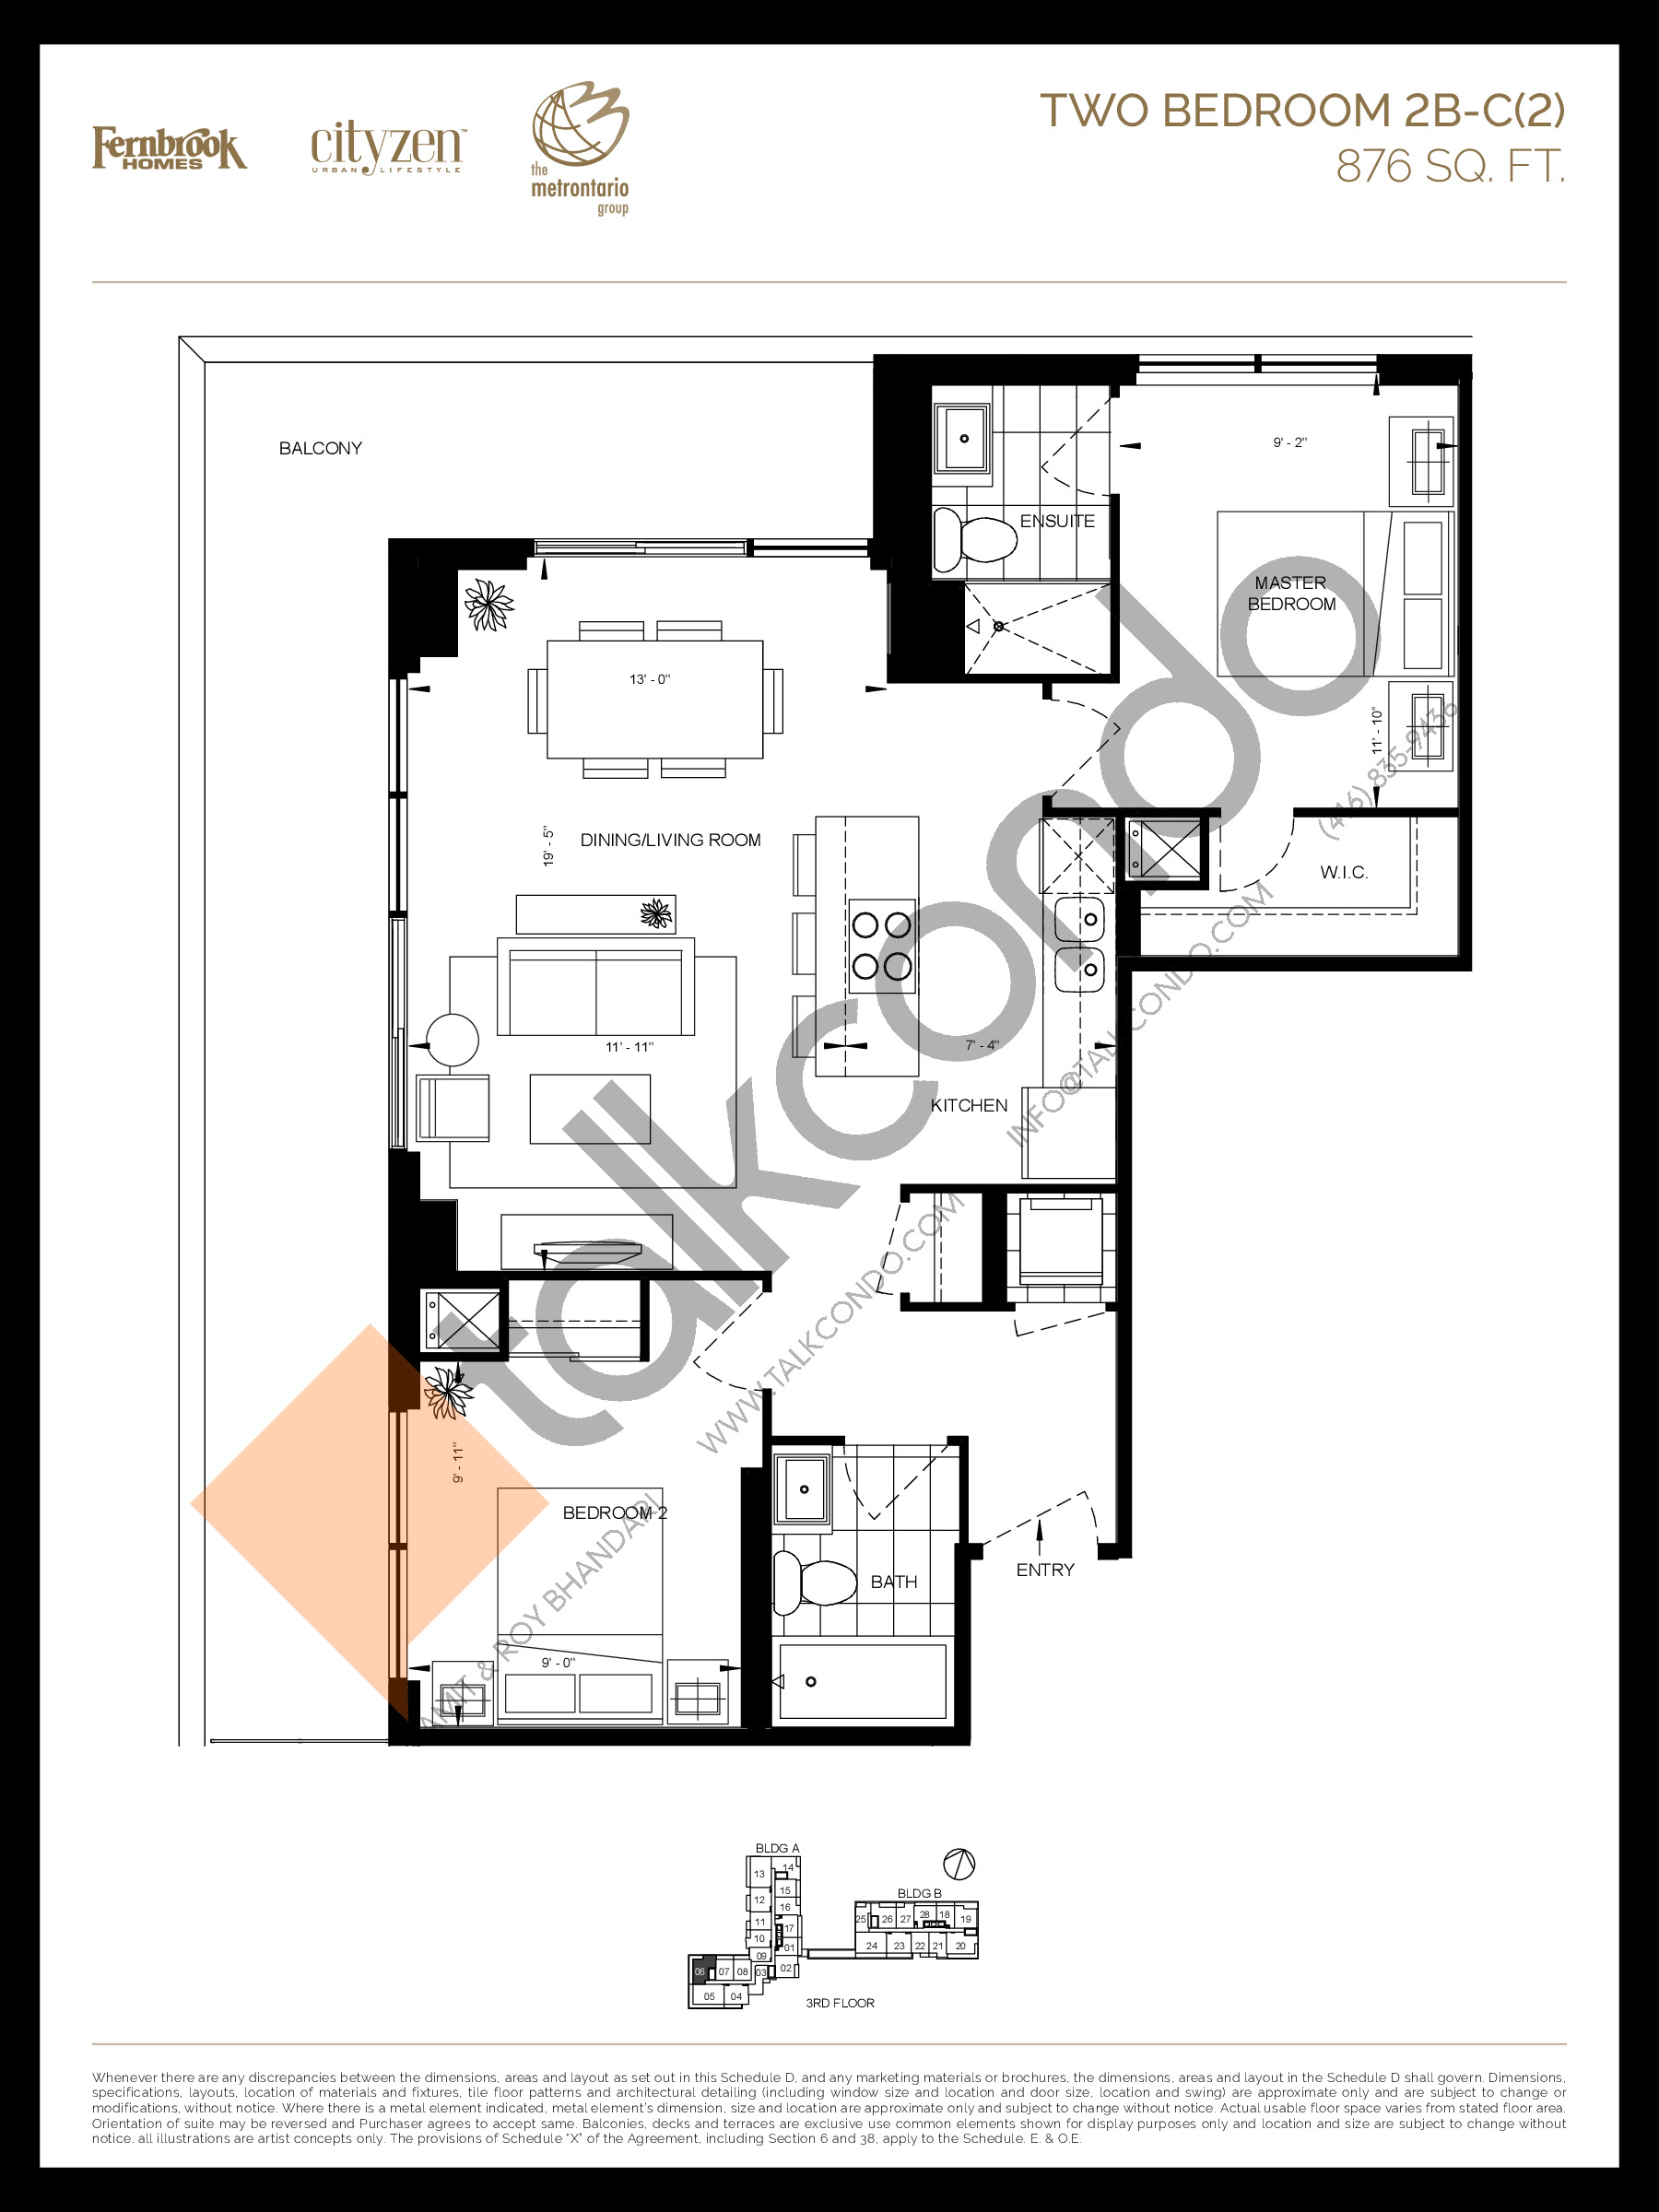 2B-C(2) Floor Plan at D'or Condos - 876 sq.ft